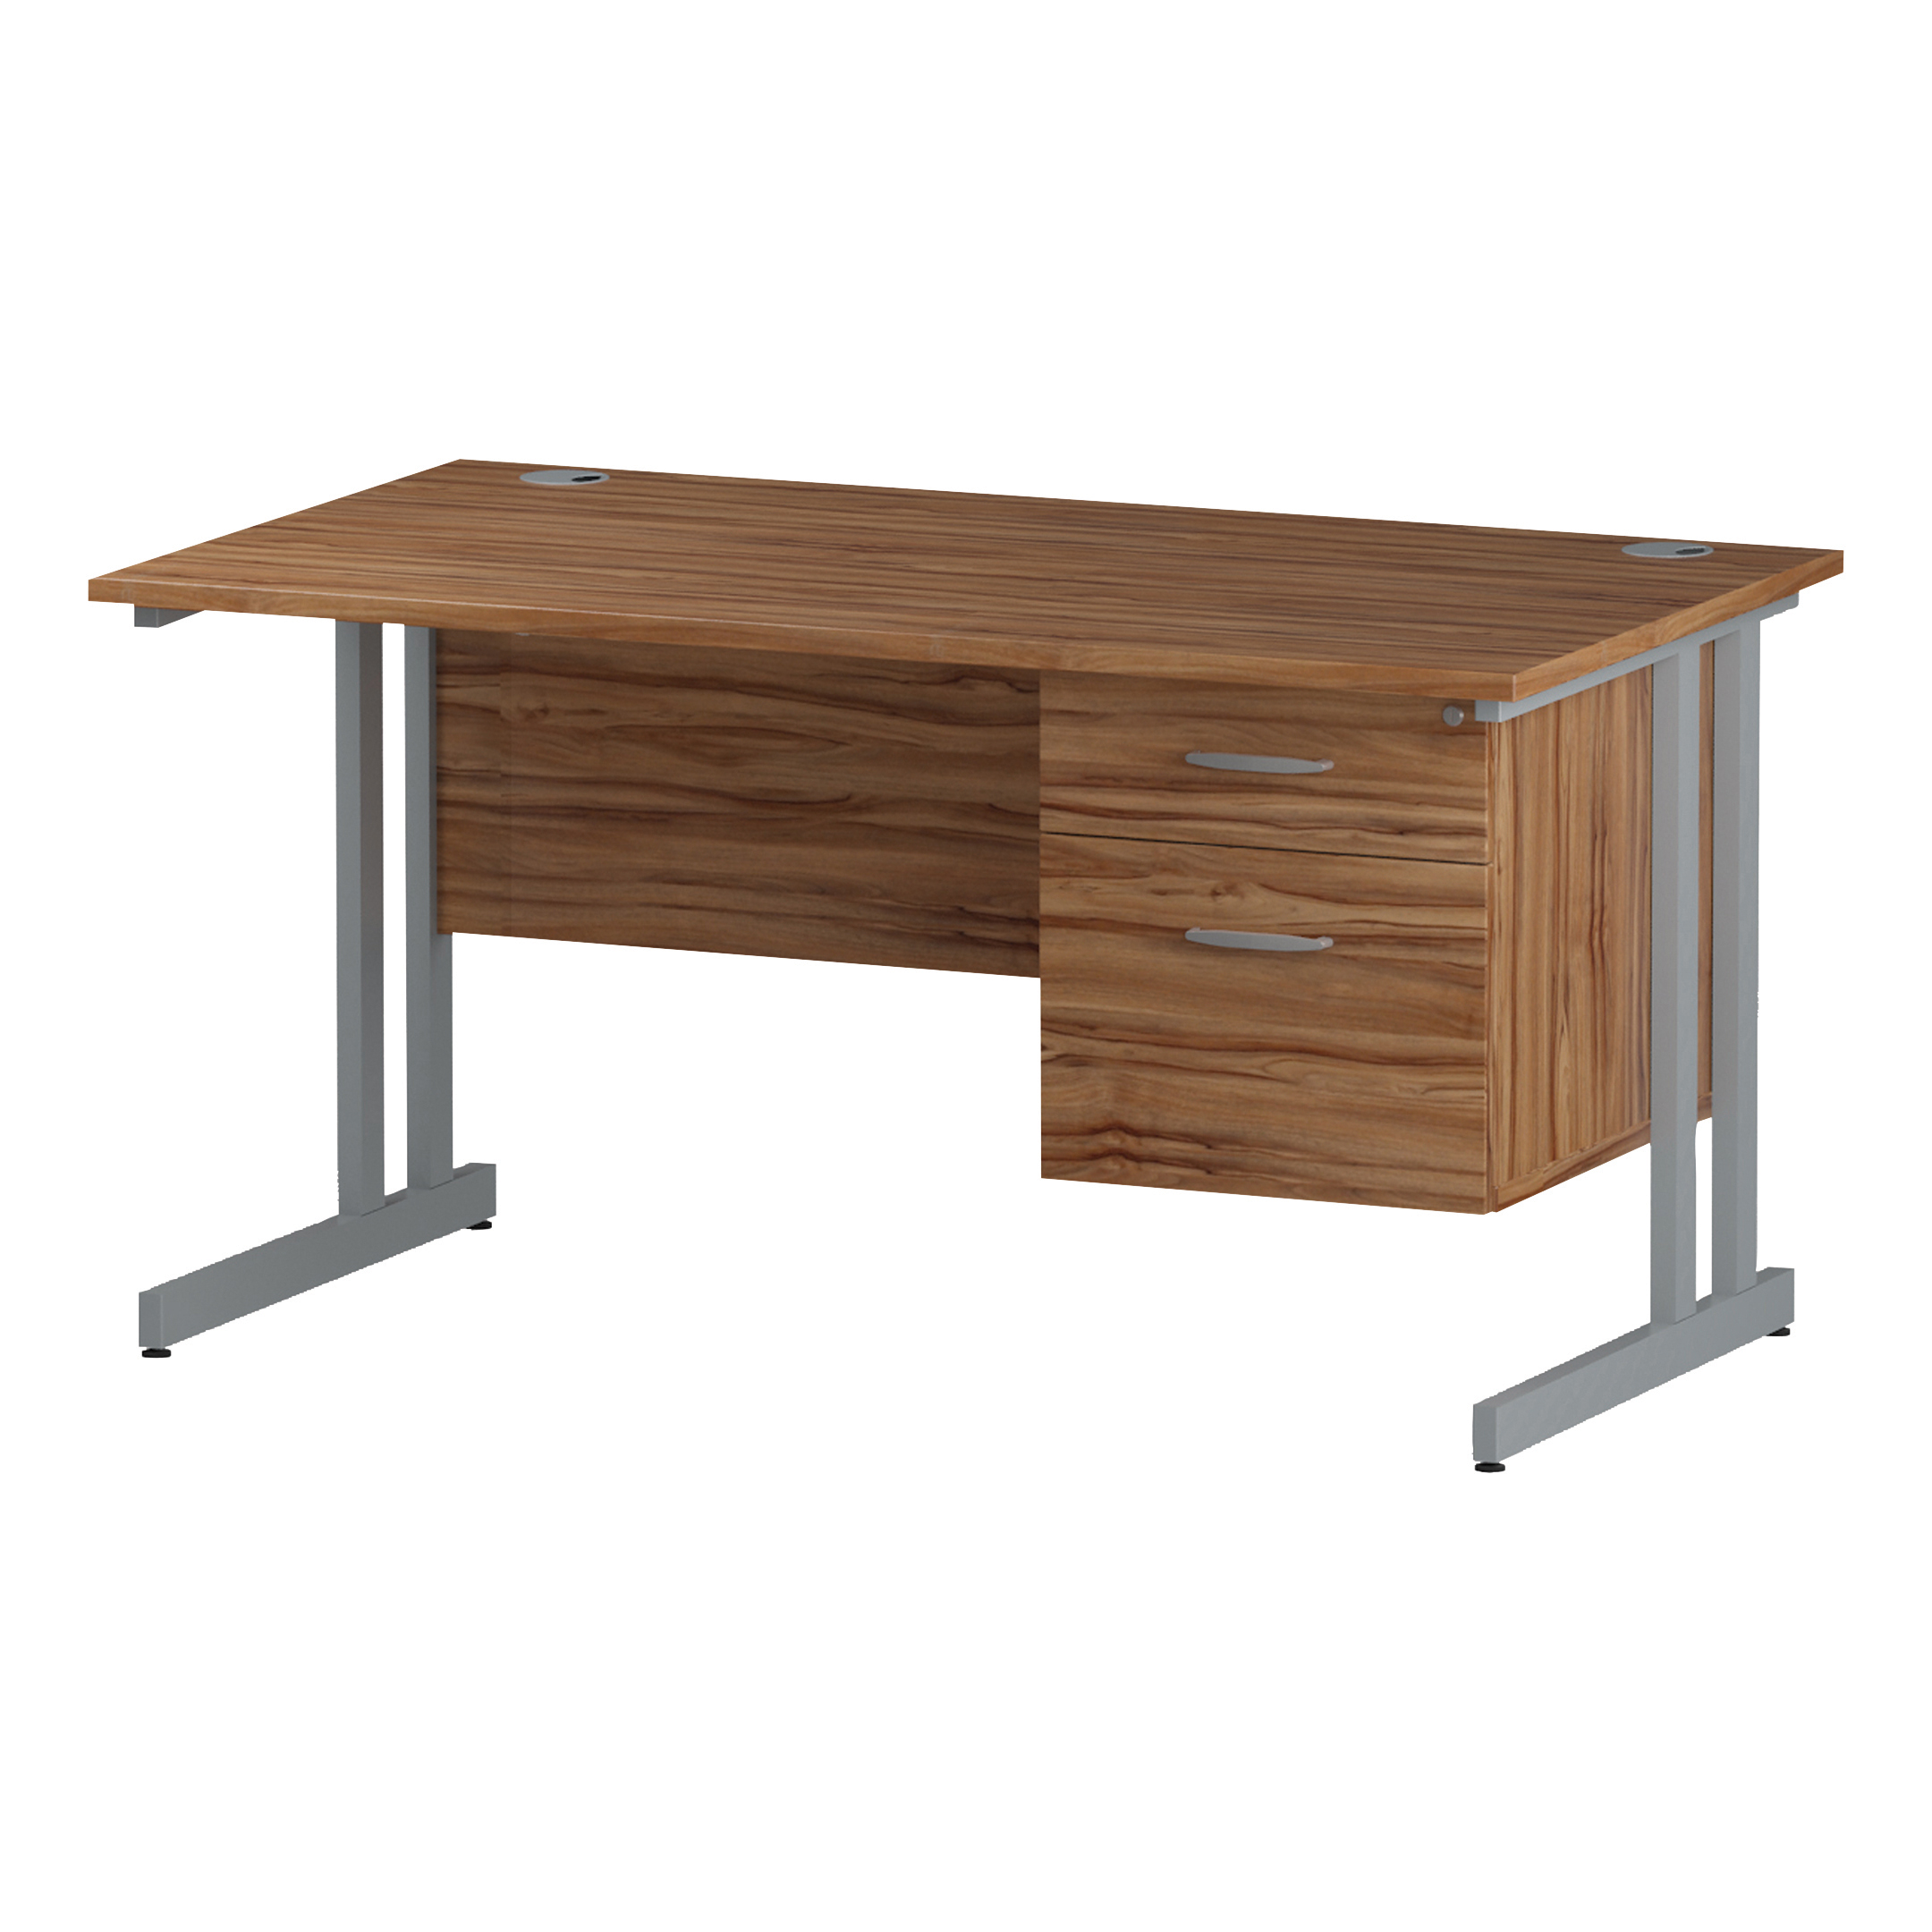 Trexus Rectangular Desk Silver Cantilever Leg 1400x800mm Fixed Pedestal 2 Drawers Walnut Ref I001920